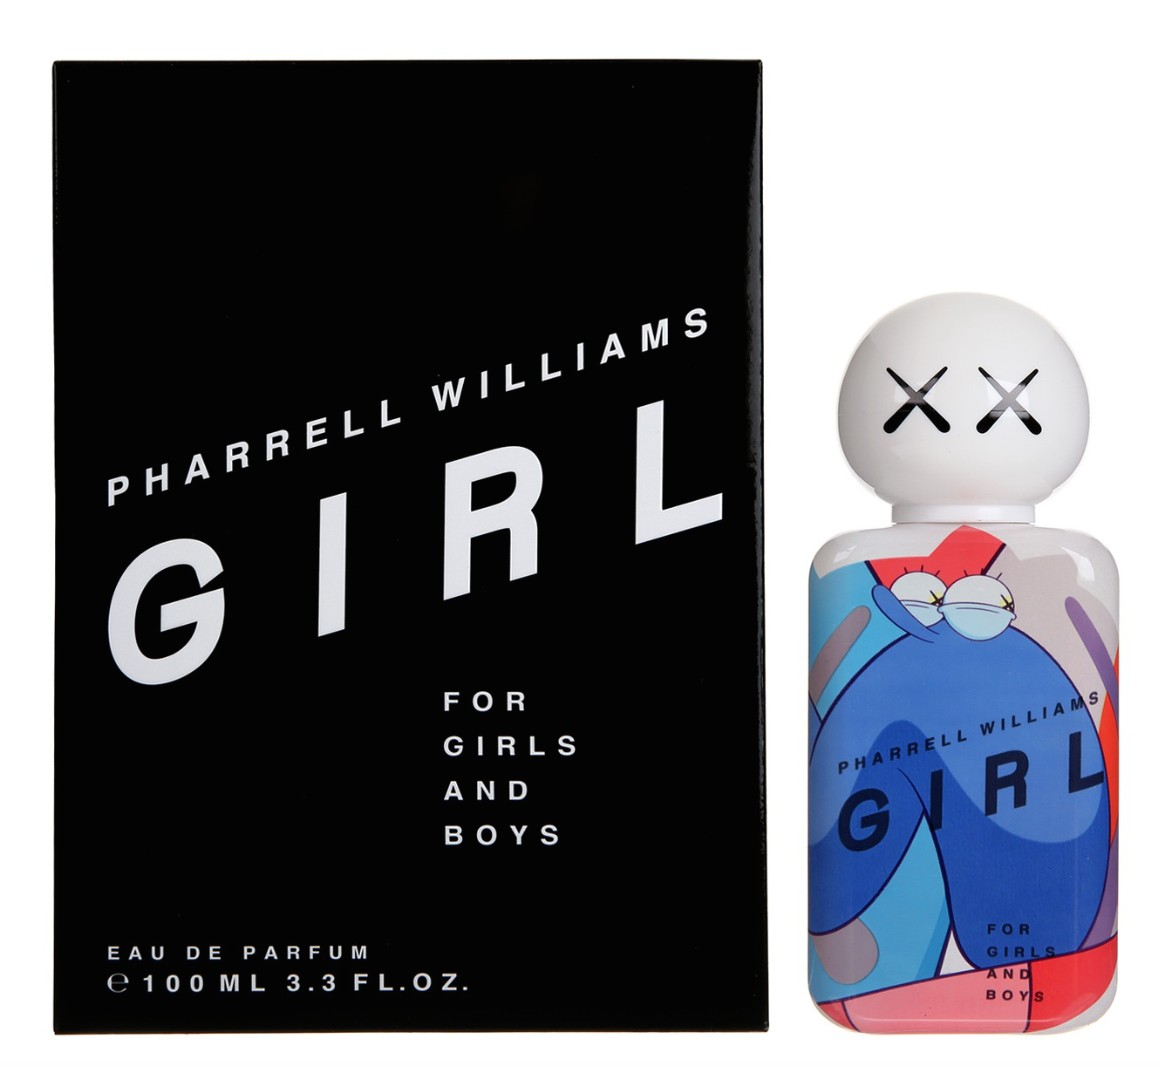 comme des garcons g i r l by pharrell williams